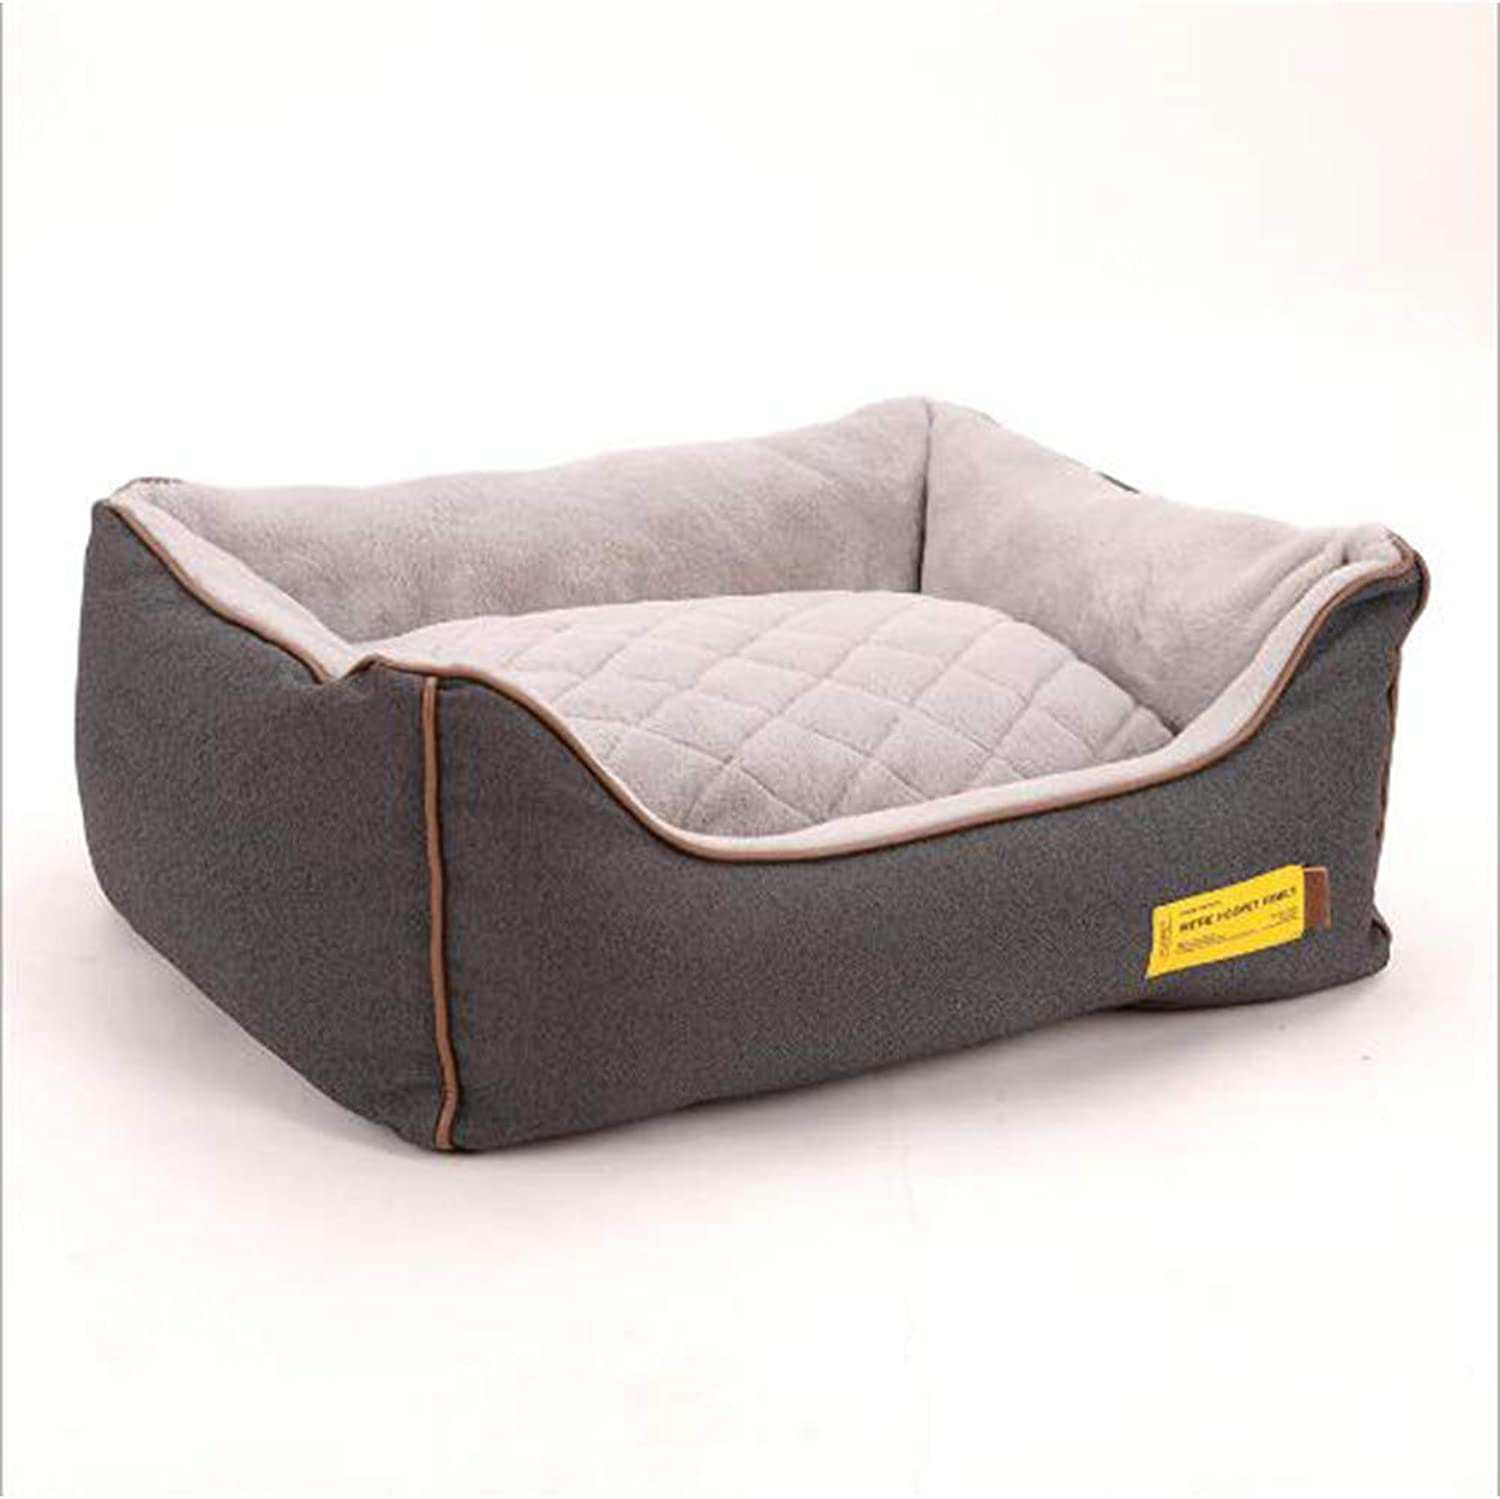 Dog Bed, Detachable And Washable, Warm In Winter, Soft And Comfortable. Suitable For All Dogs, NonSlip Oxford Cloth. Various Sizes,M